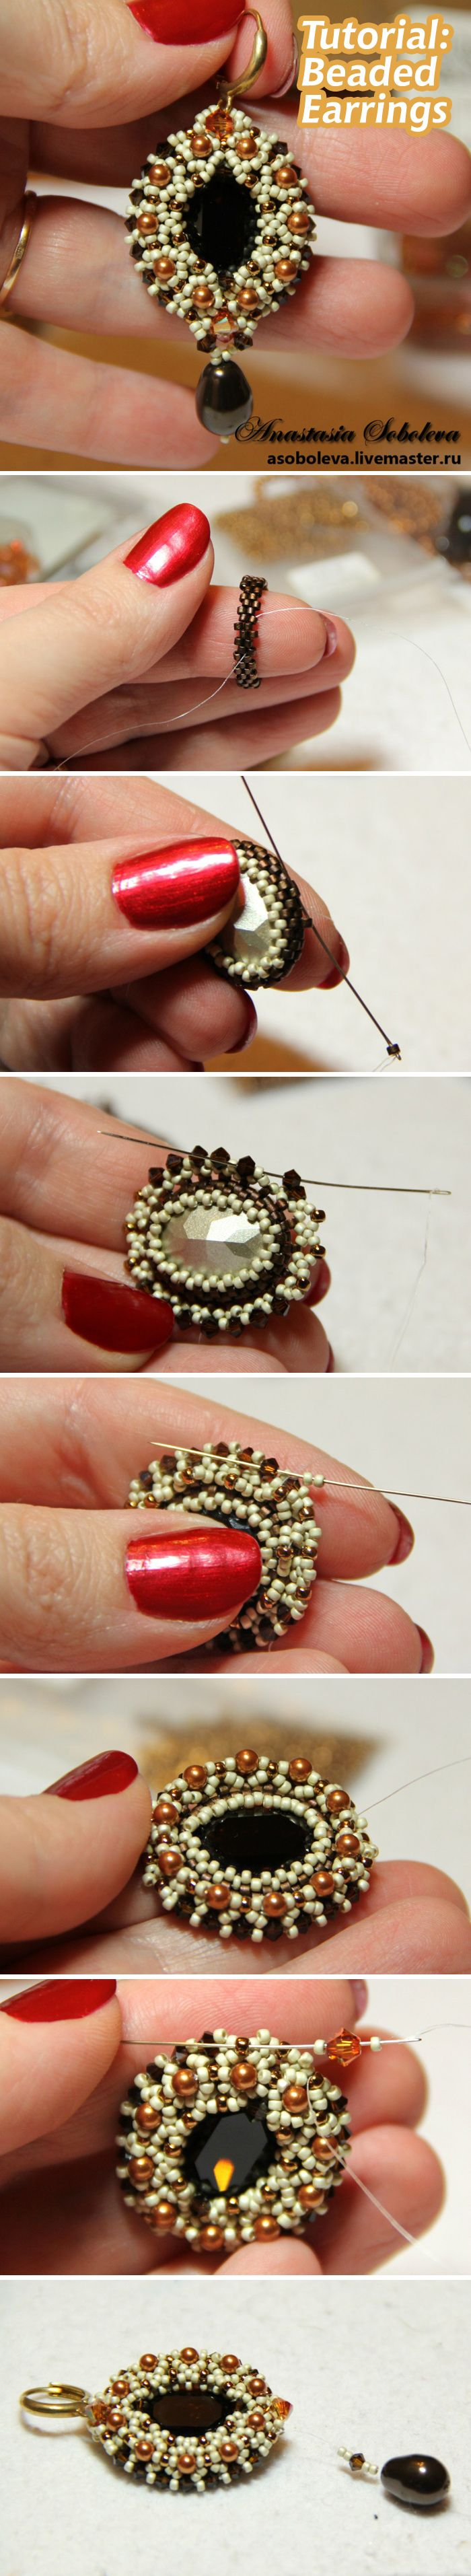 Beaded Earring Tutuorial #diy #bead #jewelry